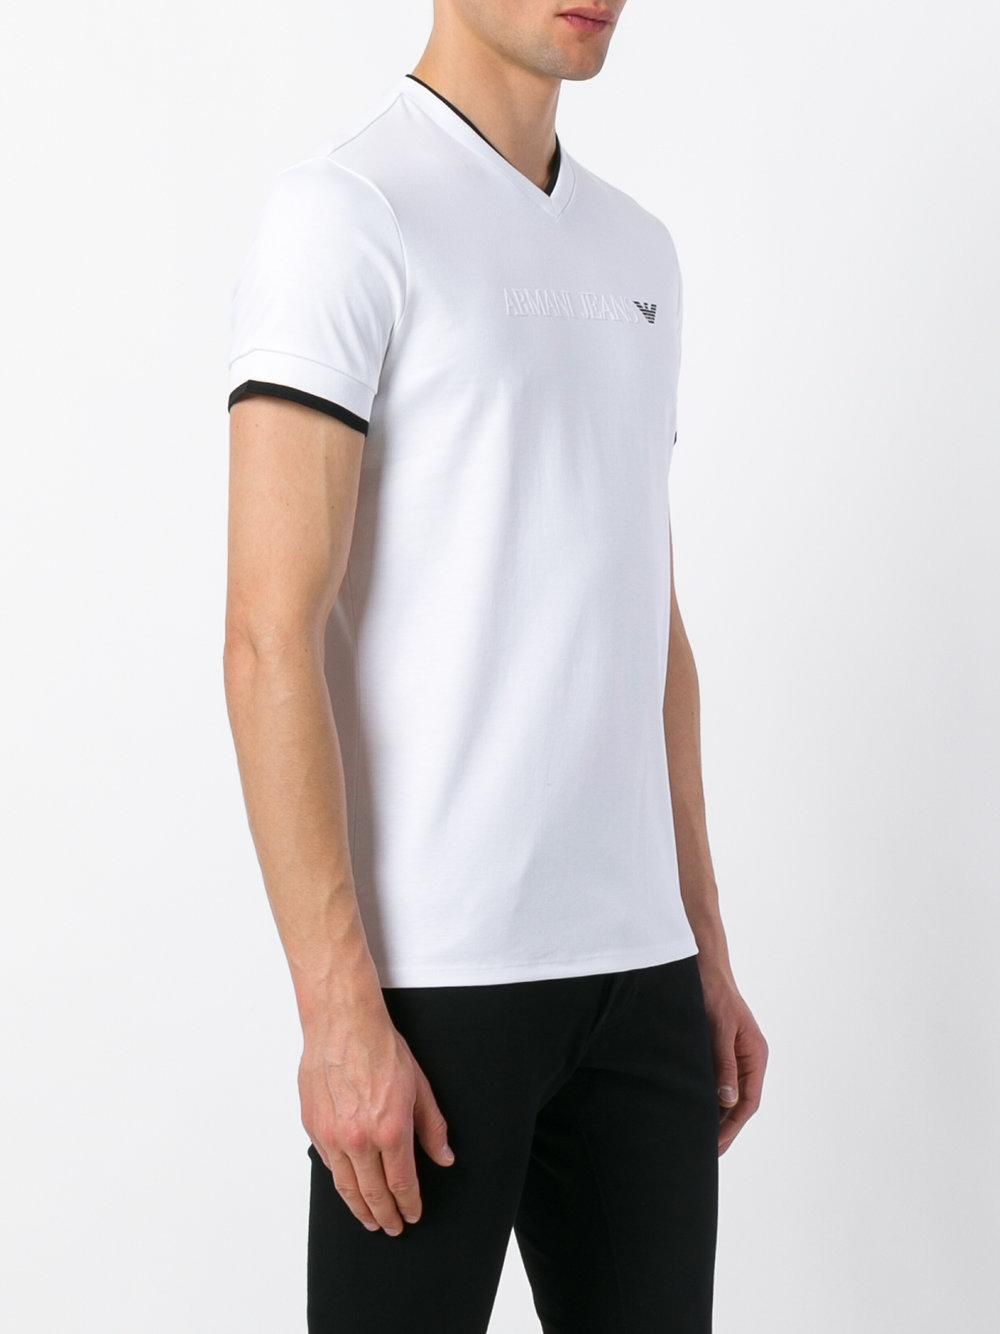 armani jeans white t shirt in white for men lyst. Black Bedroom Furniture Sets. Home Design Ideas